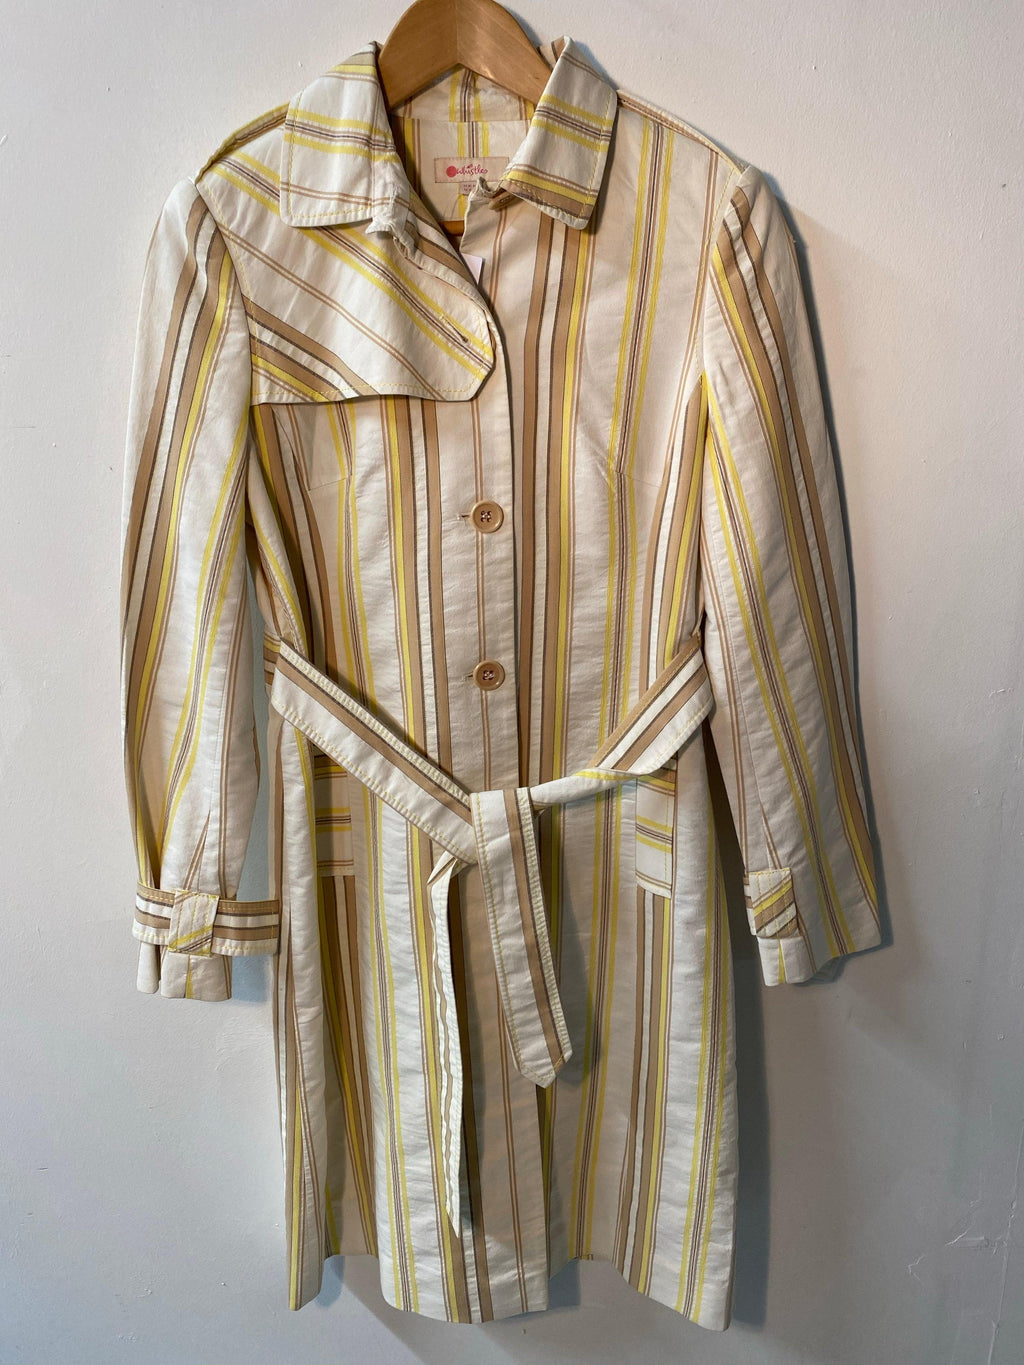 Whistles 100% Cotton Trench Coat Cream Brown and Yellow Stripes UK Size 10